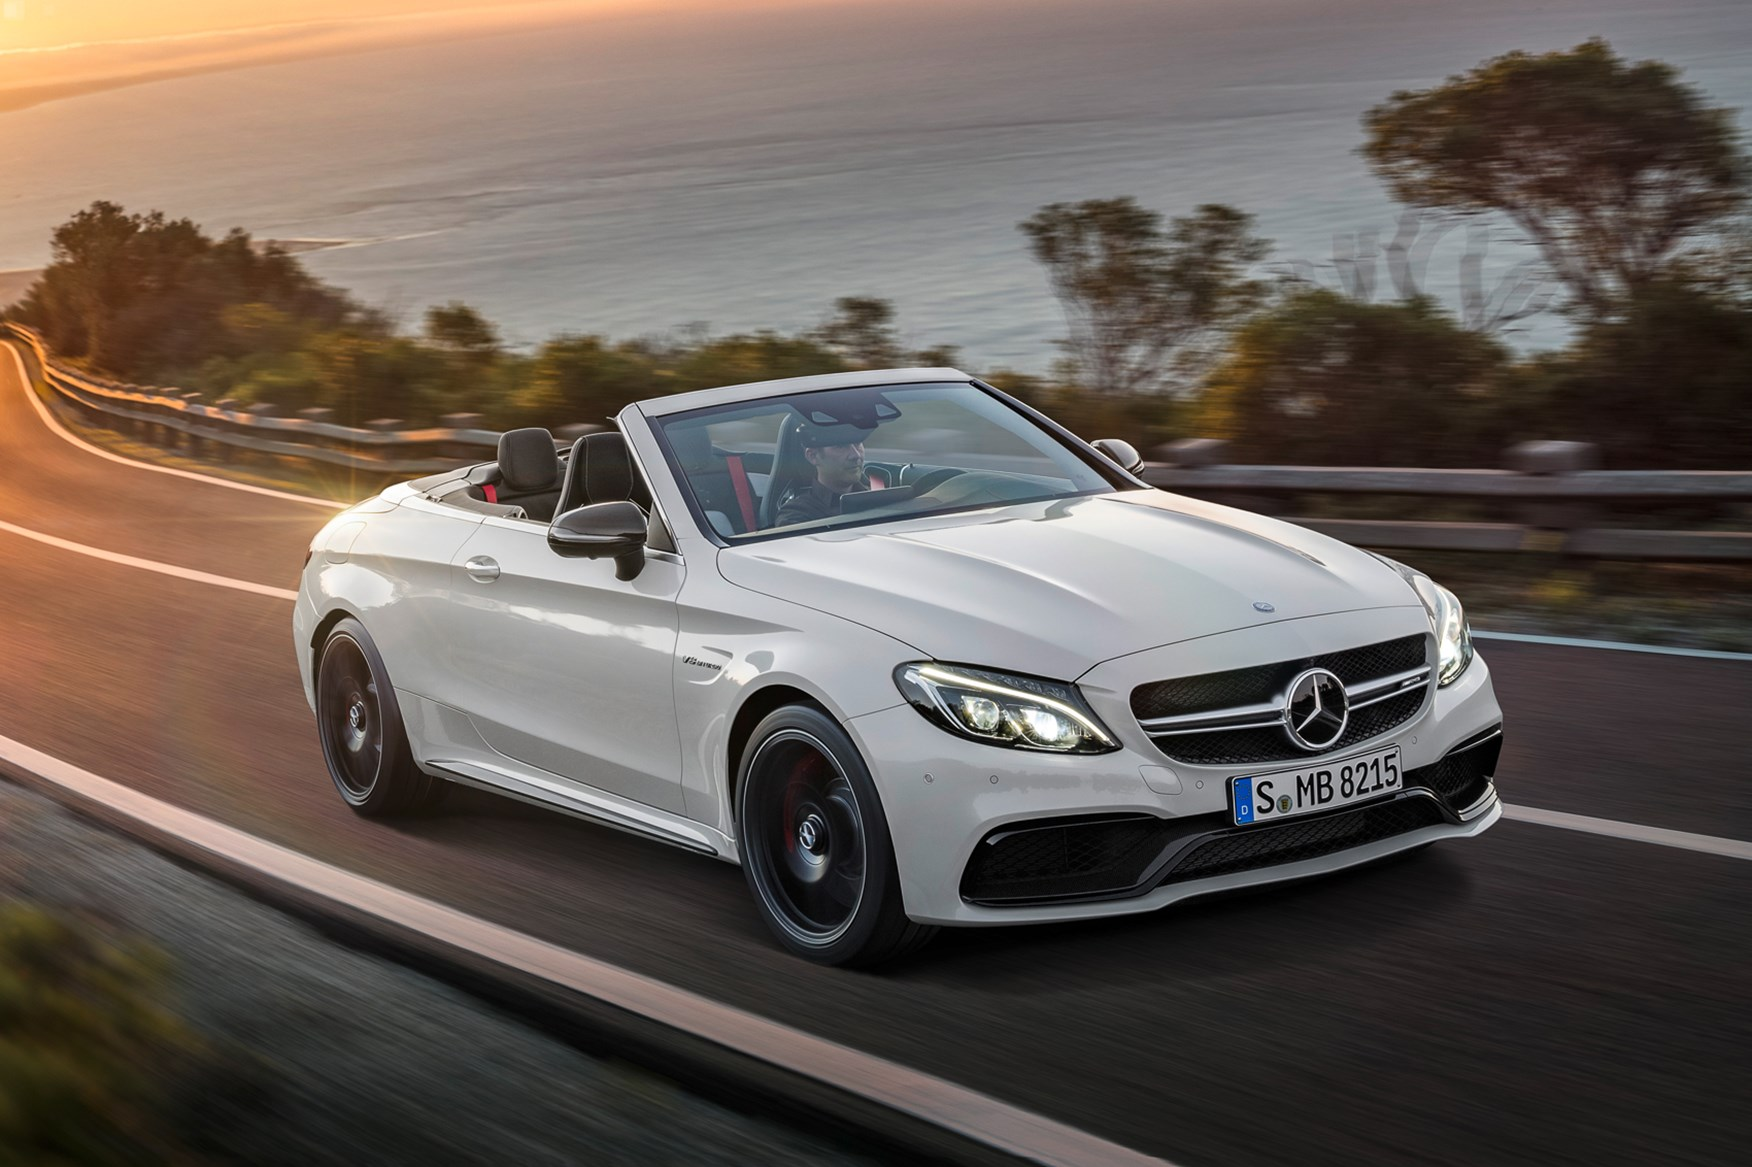 Mercedes Amg C63 Cabriolet Revealed At New York 2016 By